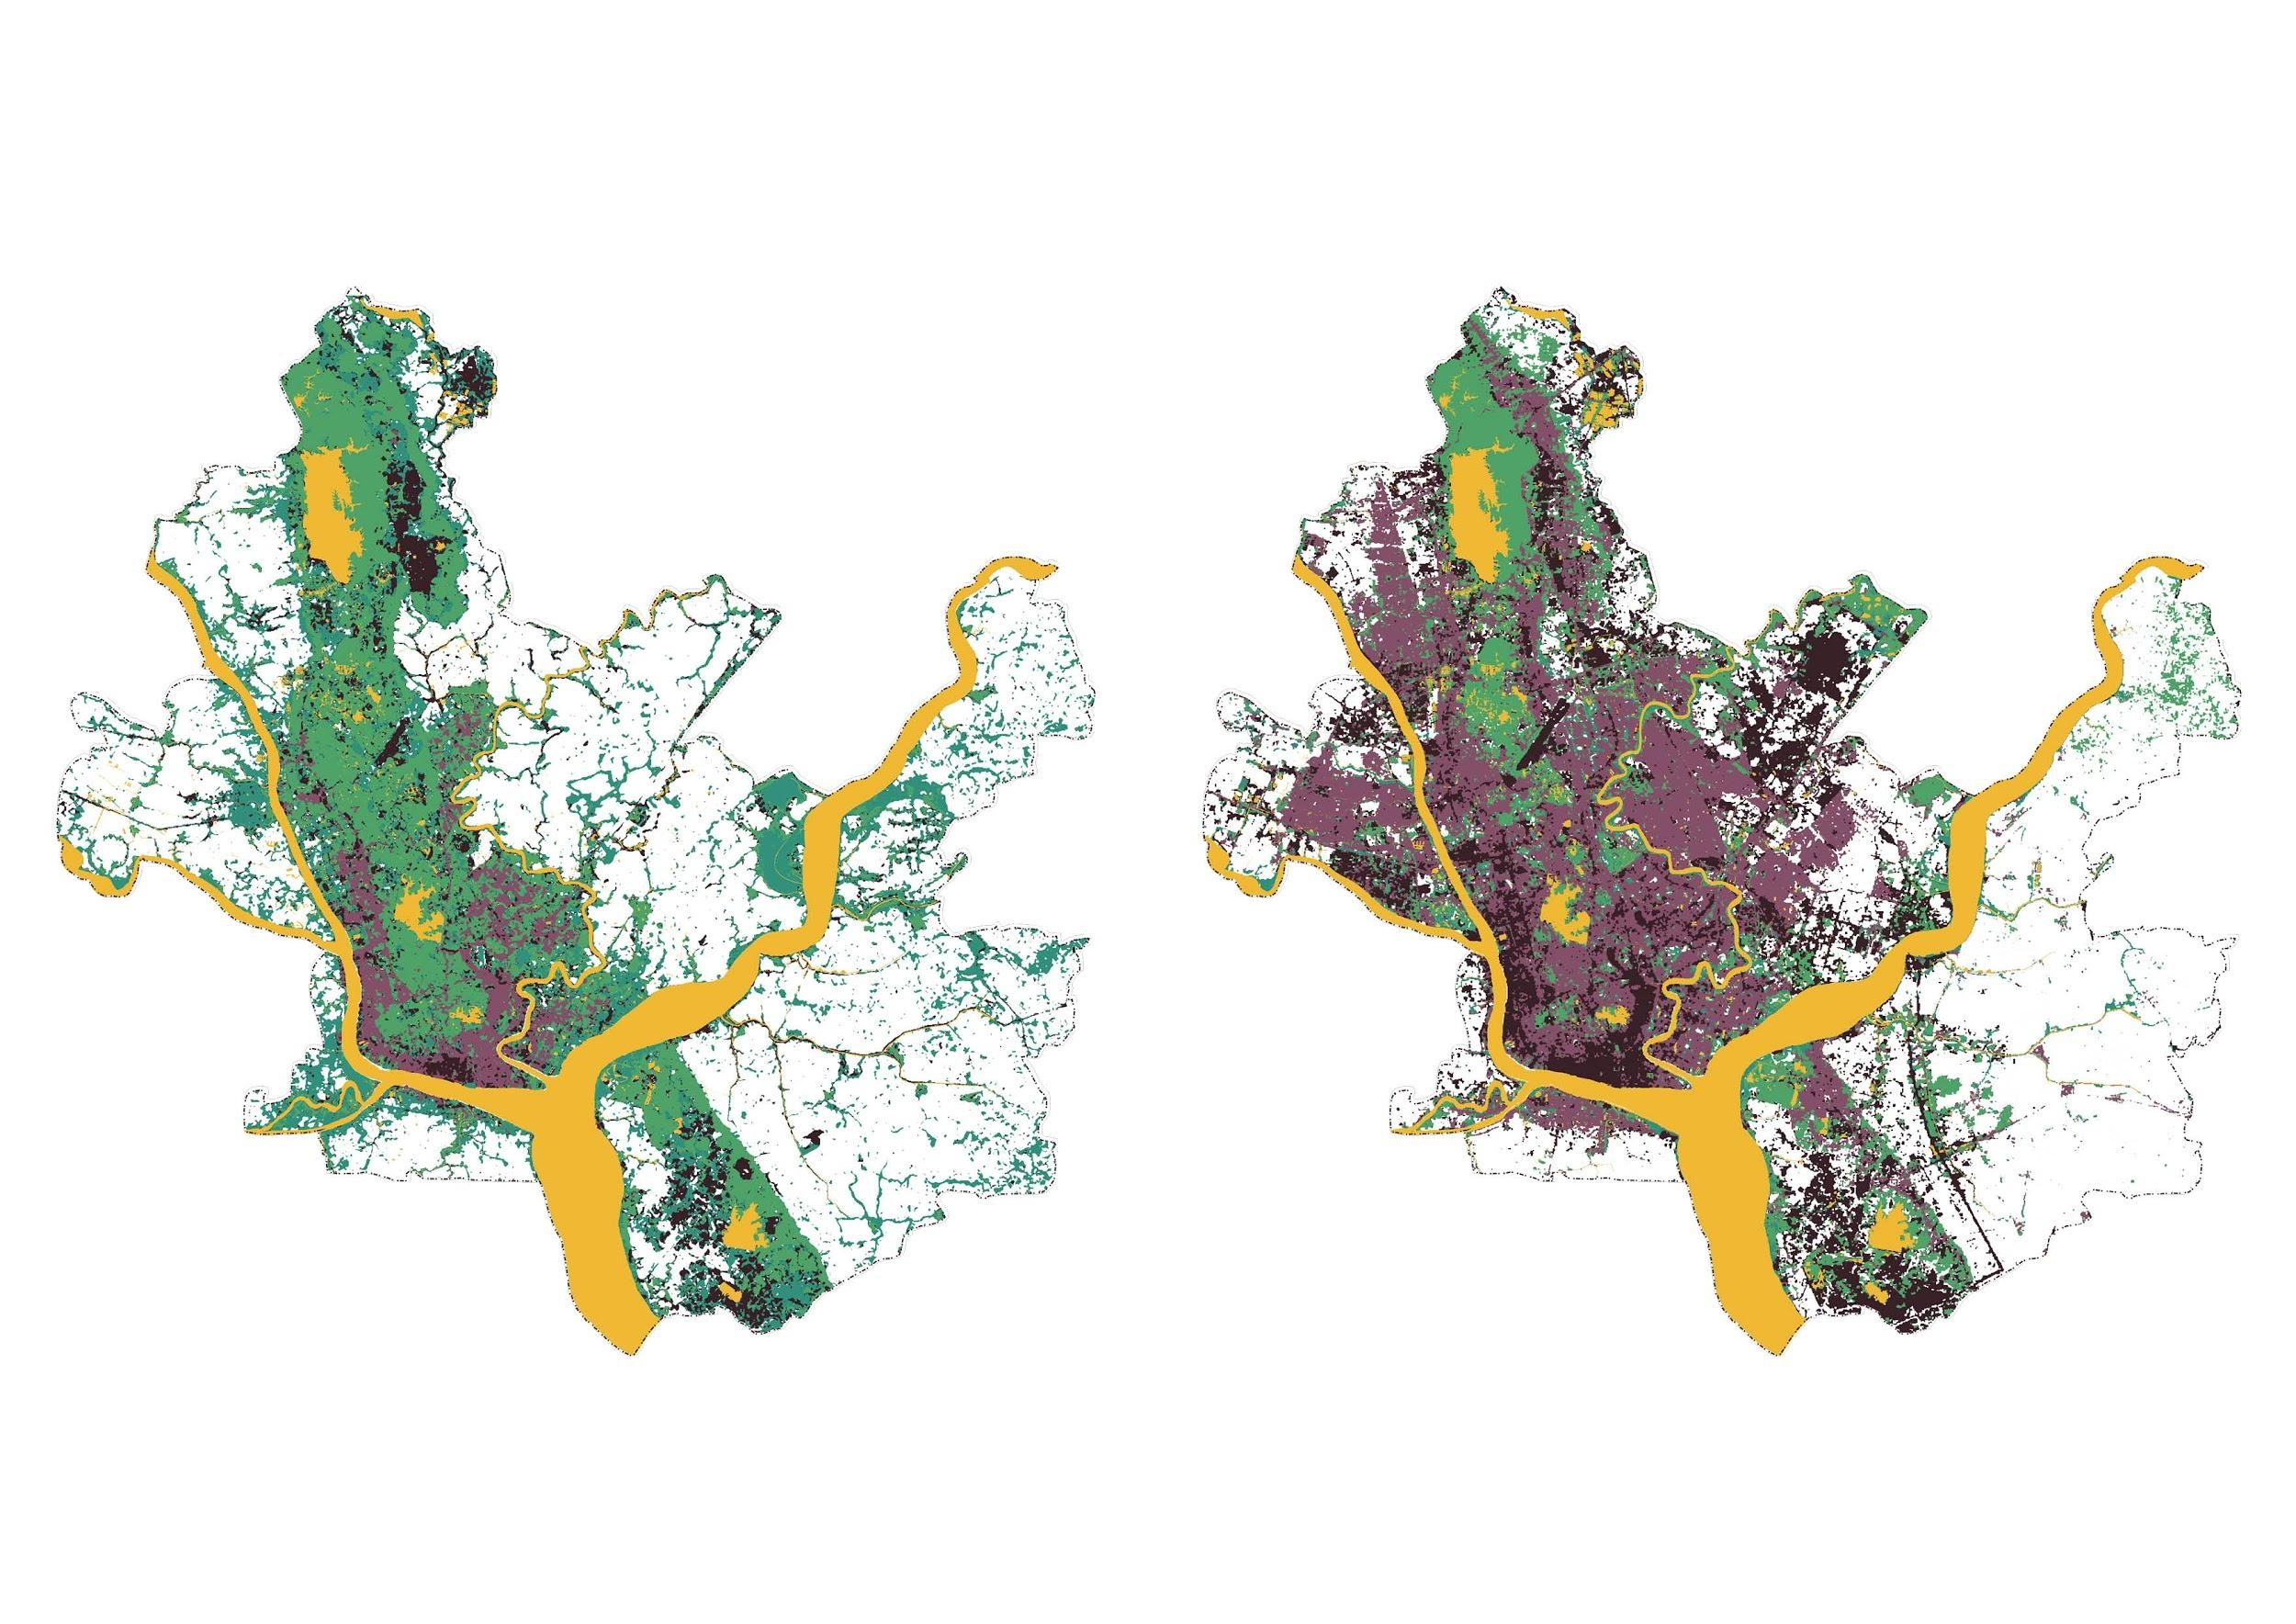 Yangon Ecologies: Landscape-responsive urban growth models for a region in transition